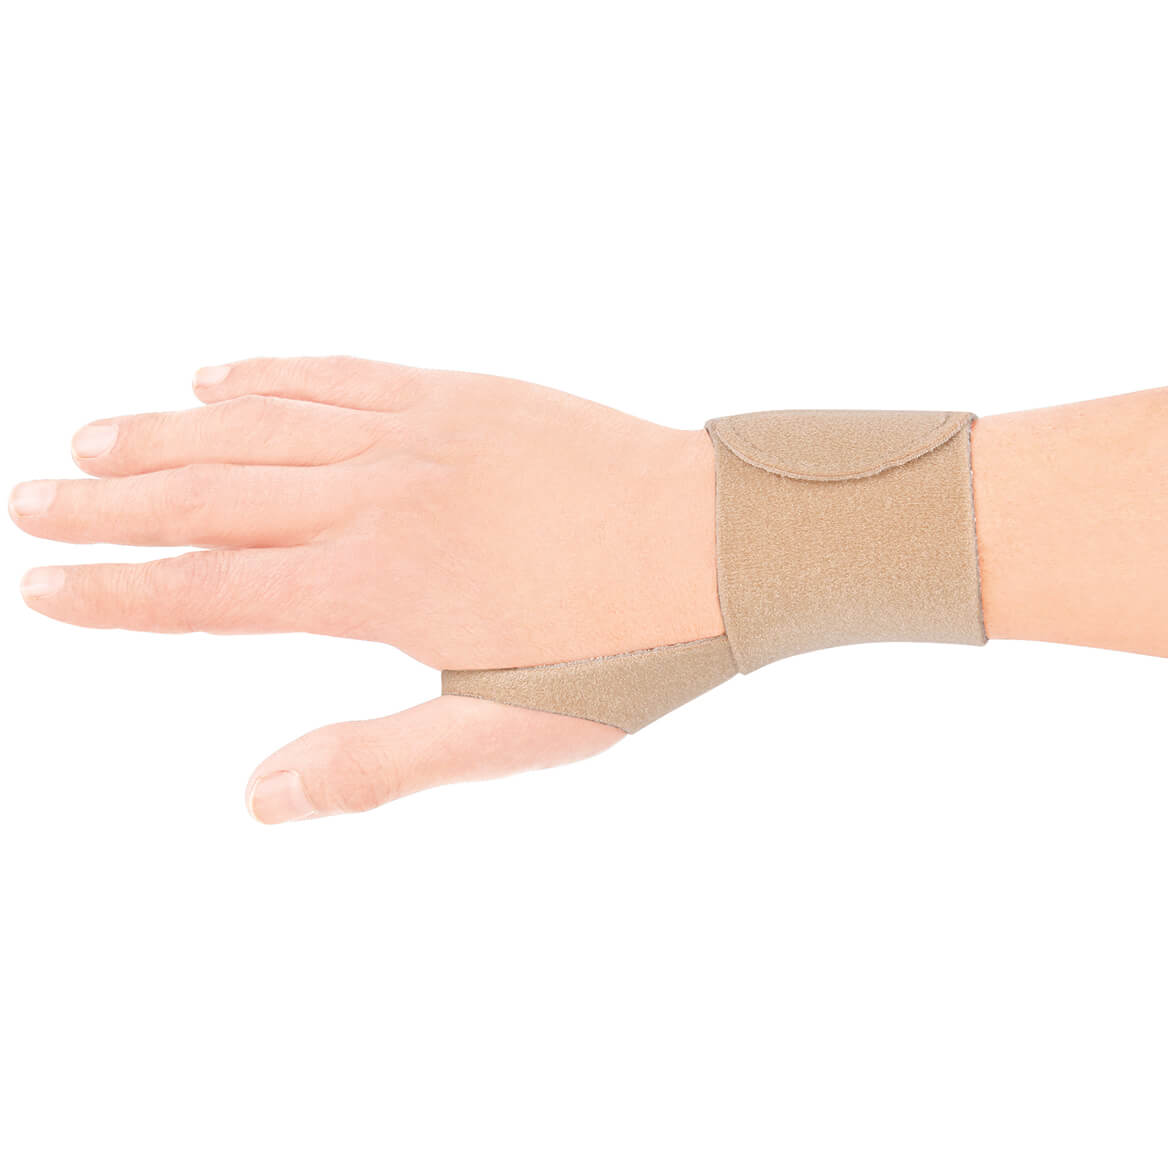 Therapeutic Gel Wrist Support-370289